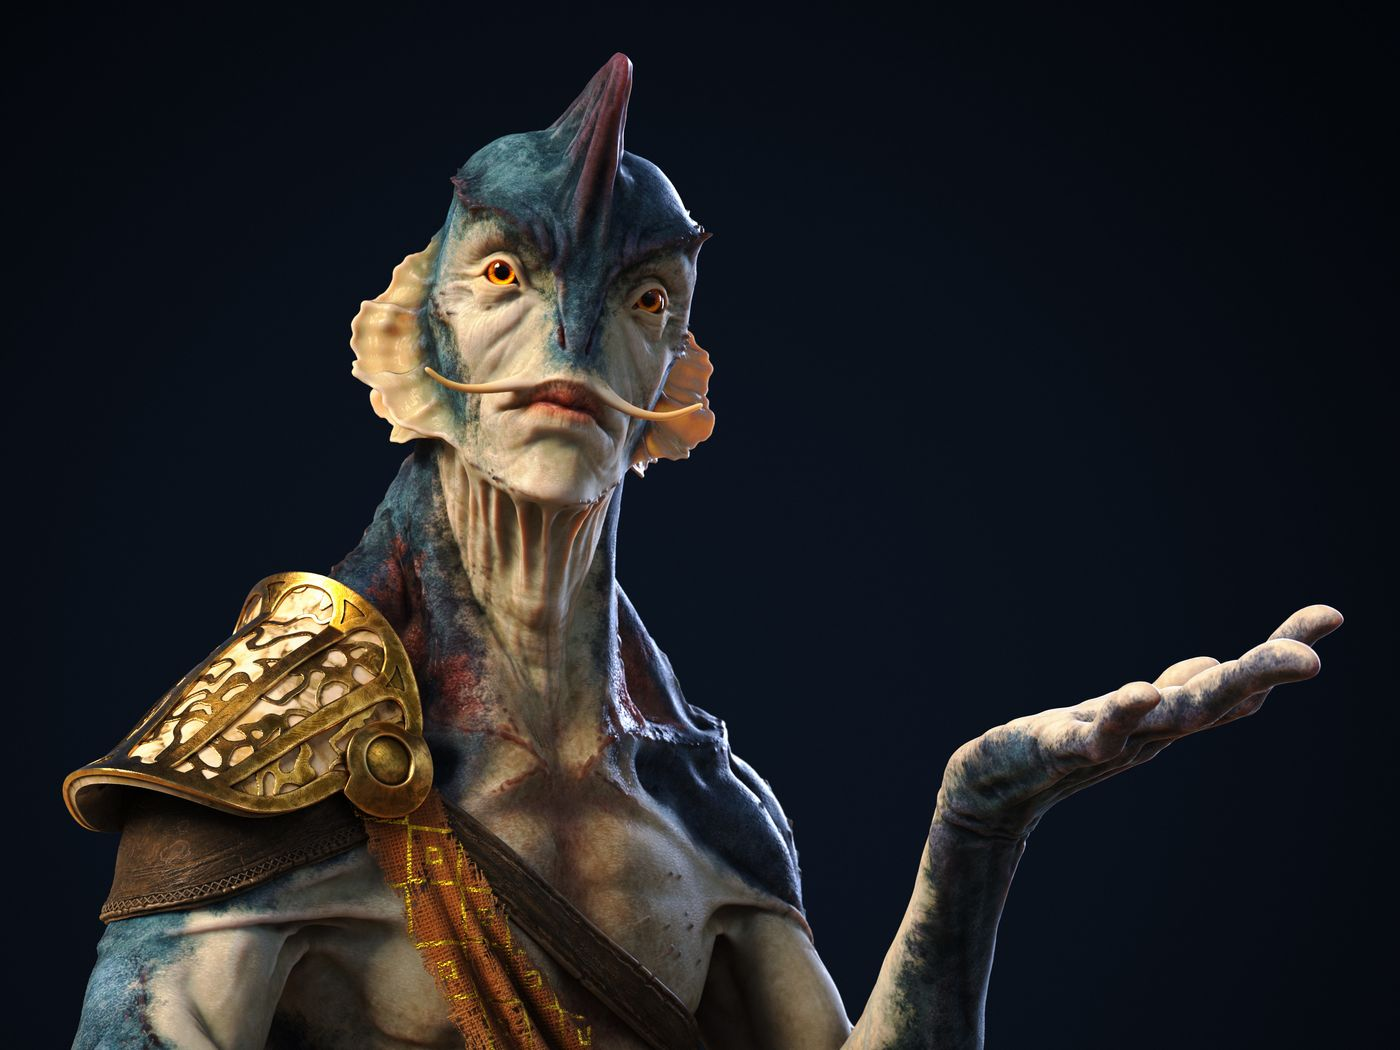 Character / creature art projects